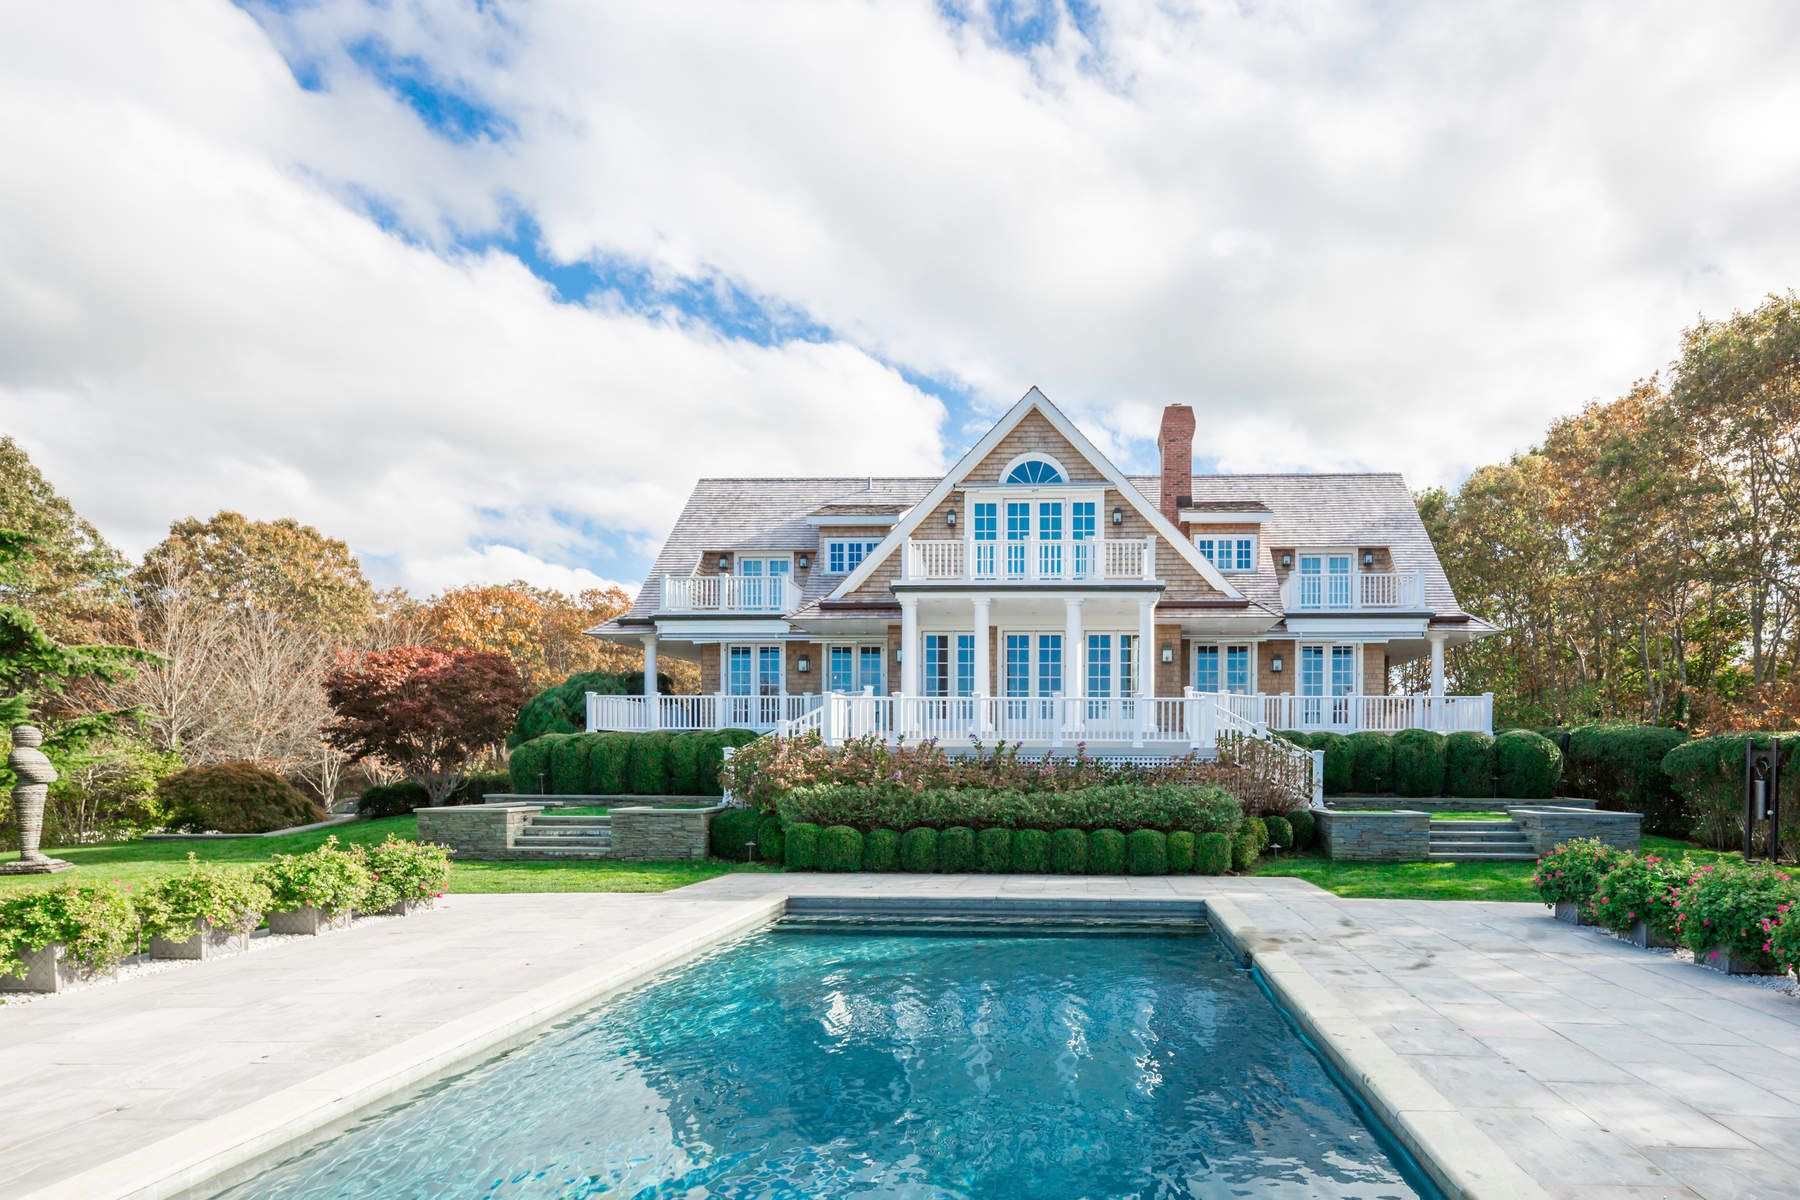 Single Family Home for Rent at TRADITIONAL WITH FOREVER WATER VIEWS Sag Harbor, New York 11963 United States